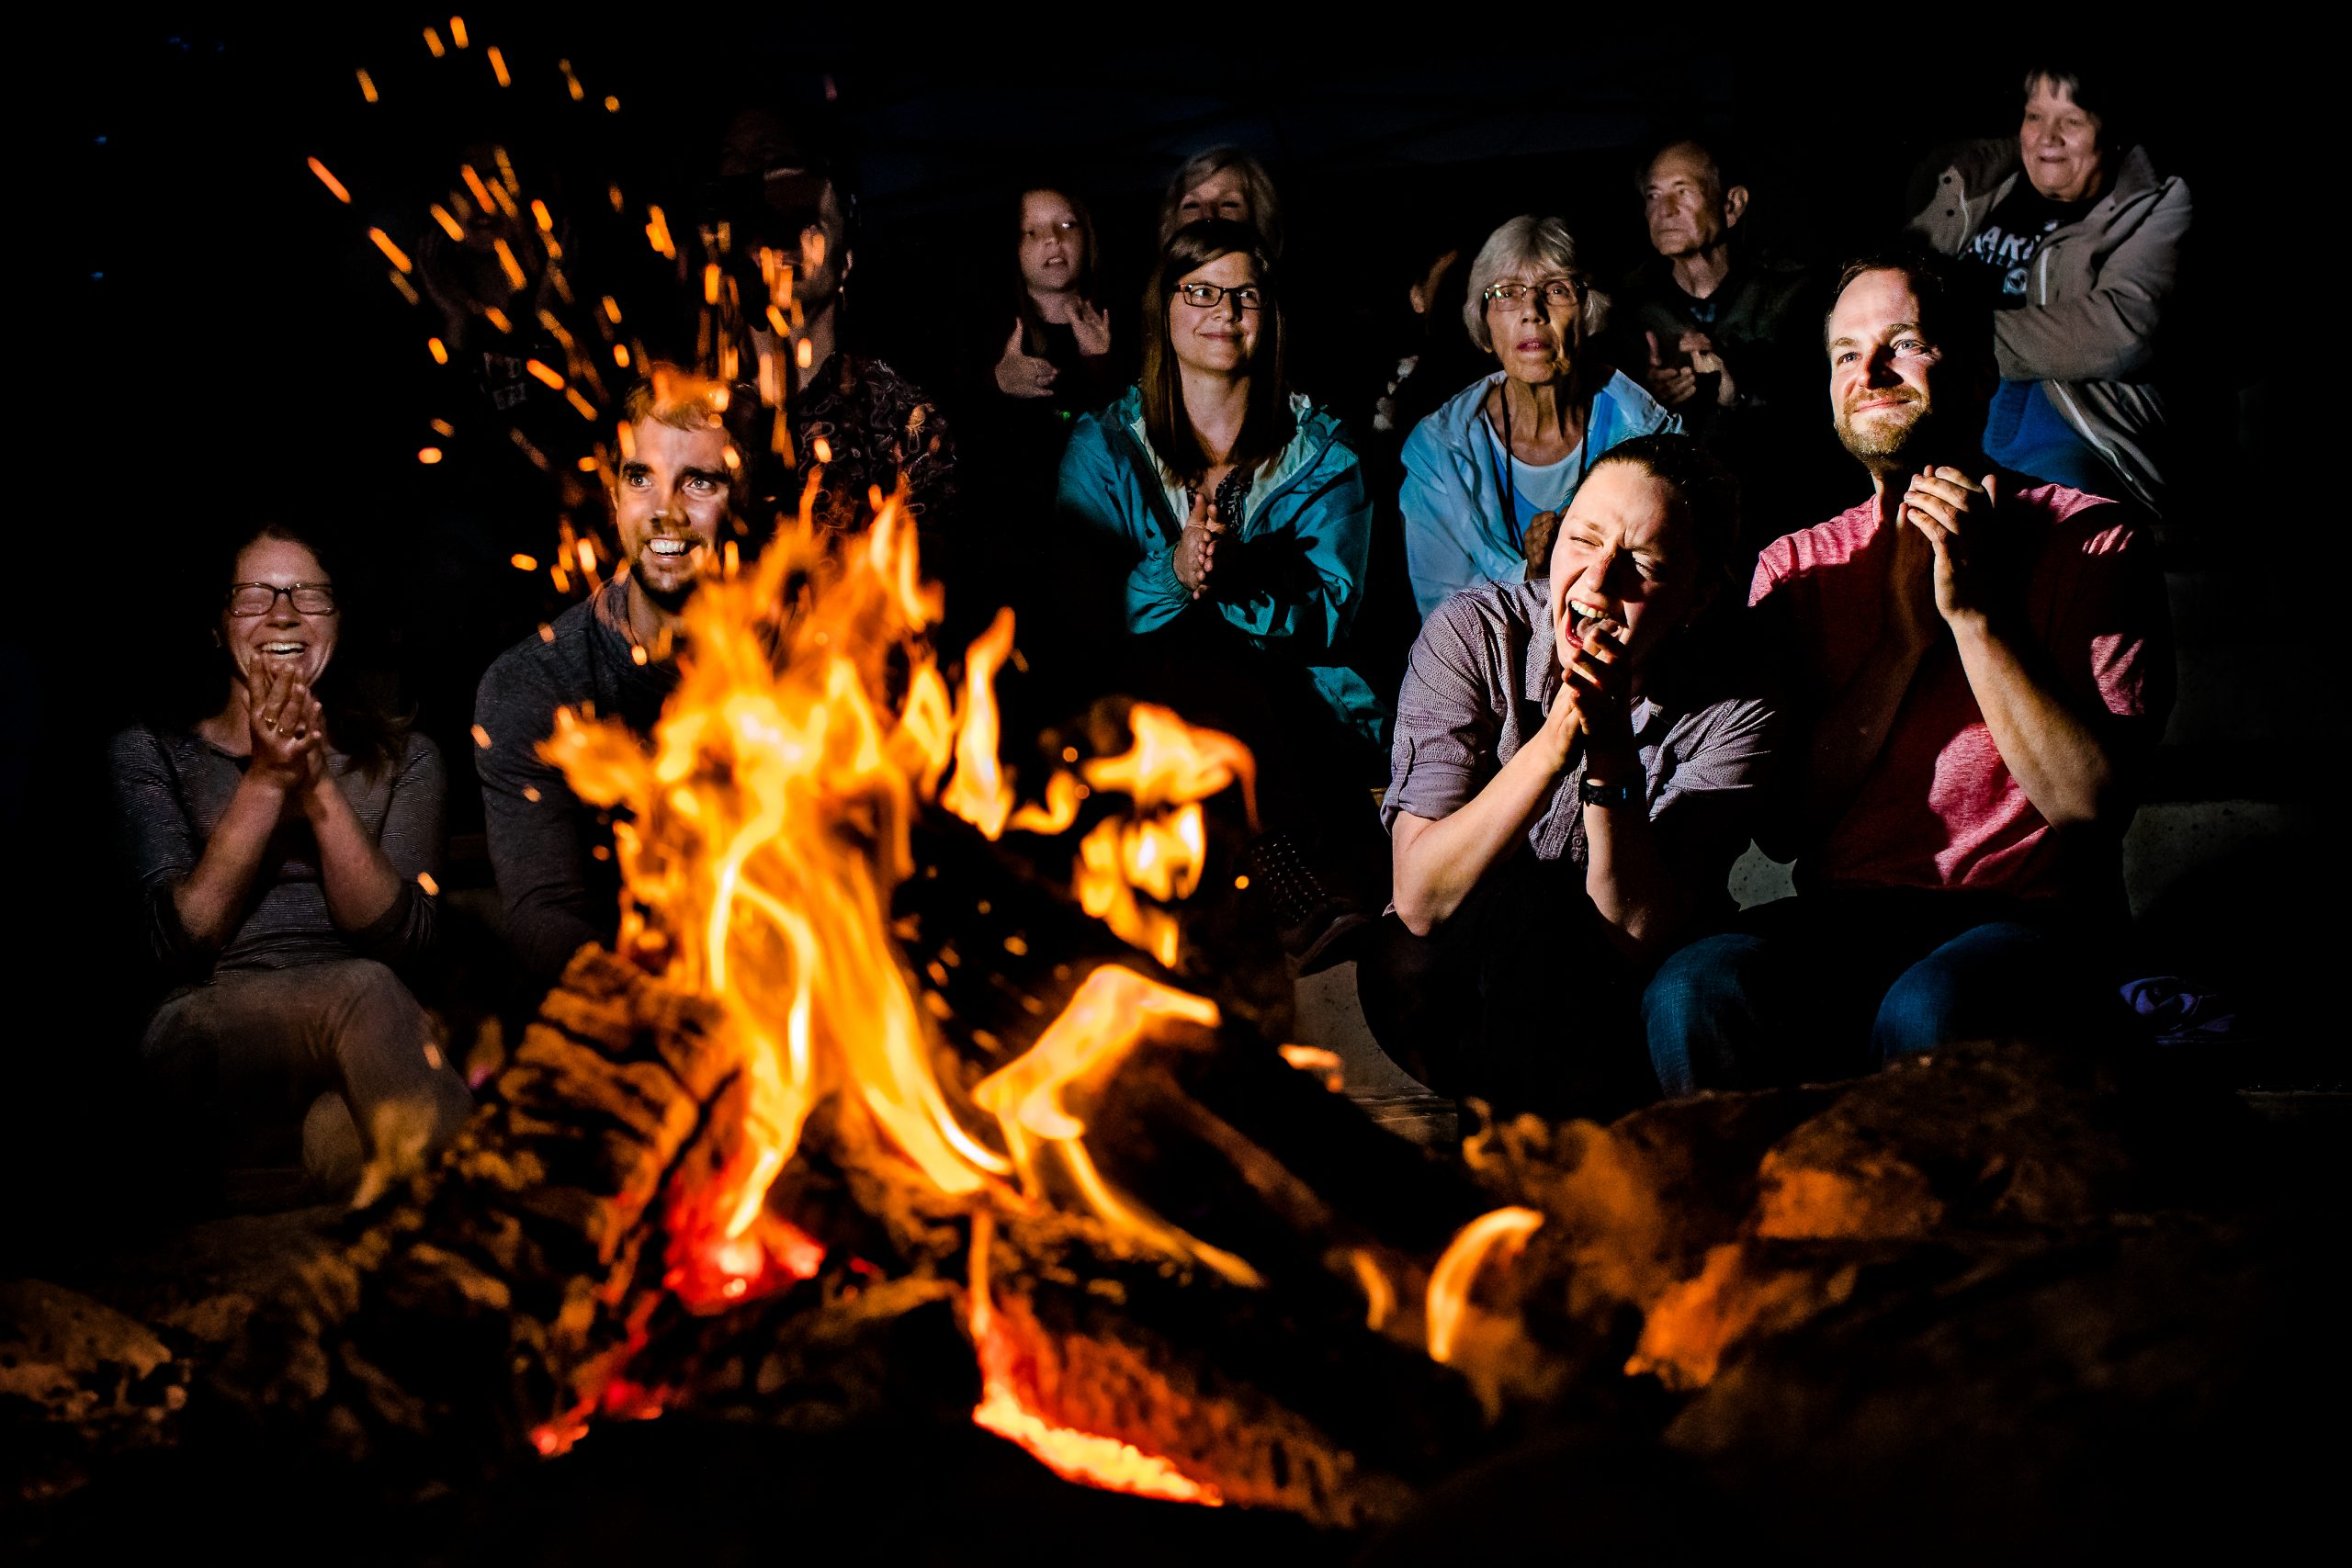 People gather around campfire in high spirits